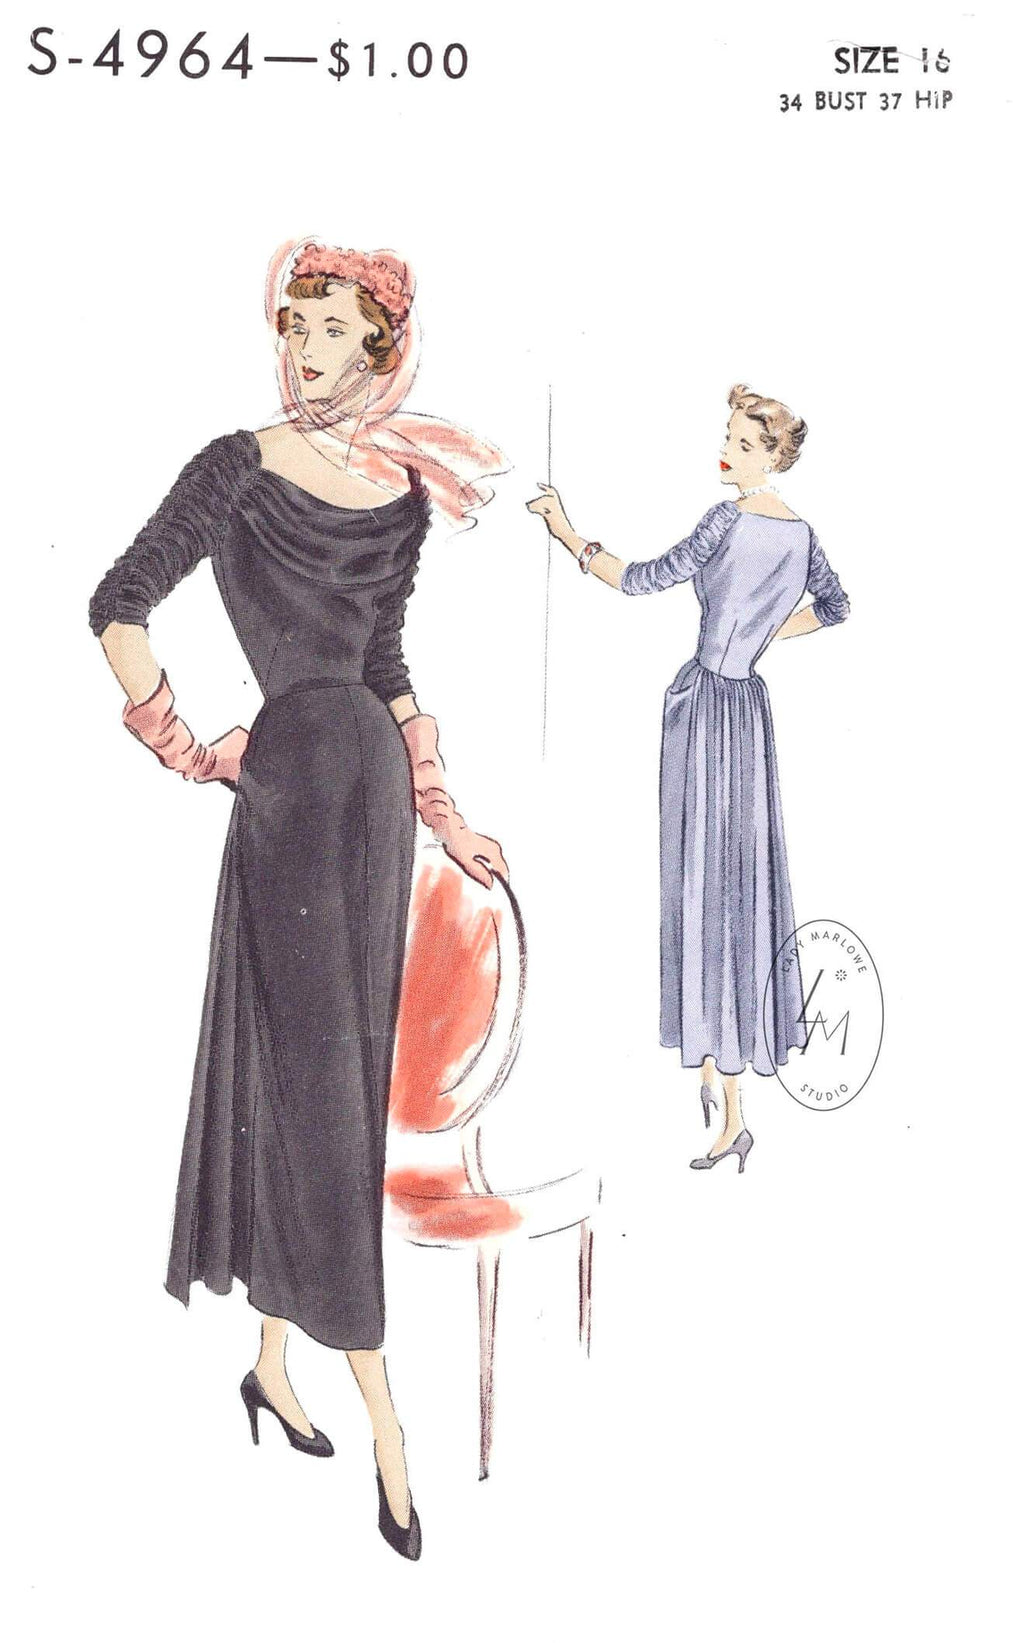 1940s 1950s Vogue S-4964 afternoon or cocktail dress wide draped neckline vintage sewing pattern repro